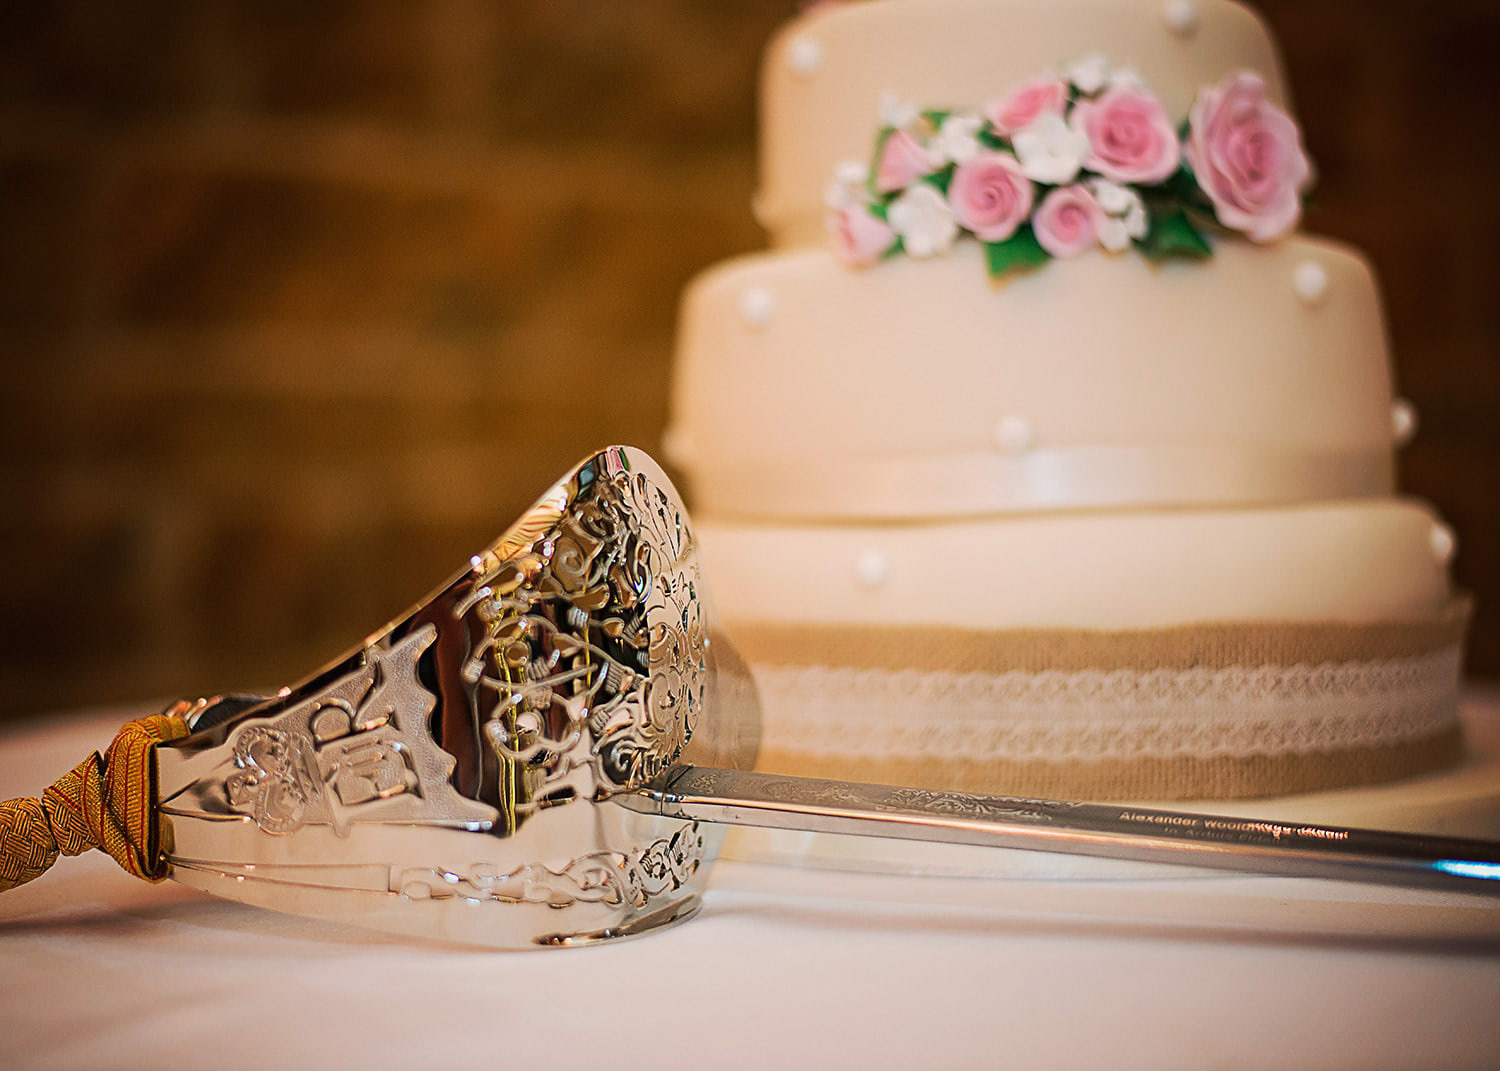 wedding-cake-ceremonial-sword.jpg